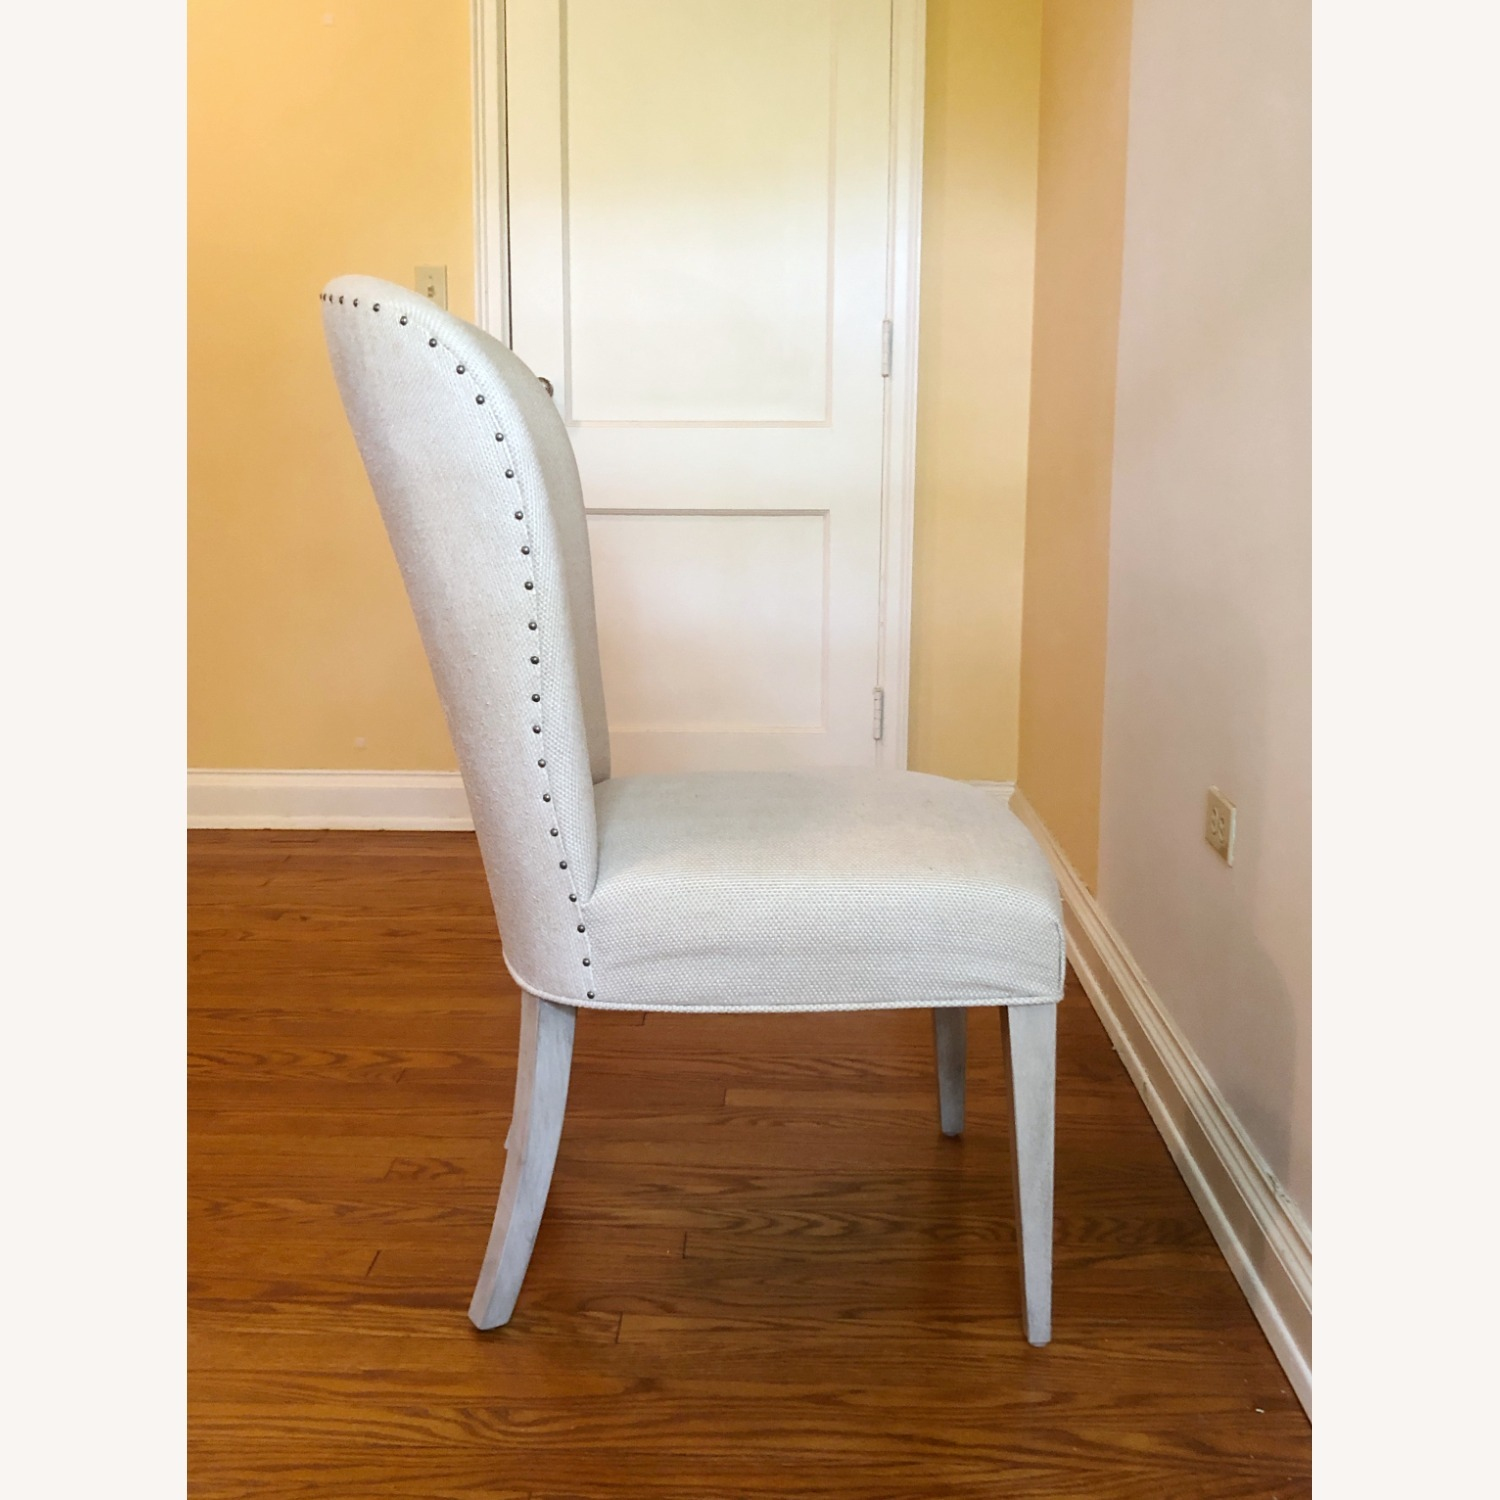 Oyster Bay Baxter Upholstered Side Chair - image-2